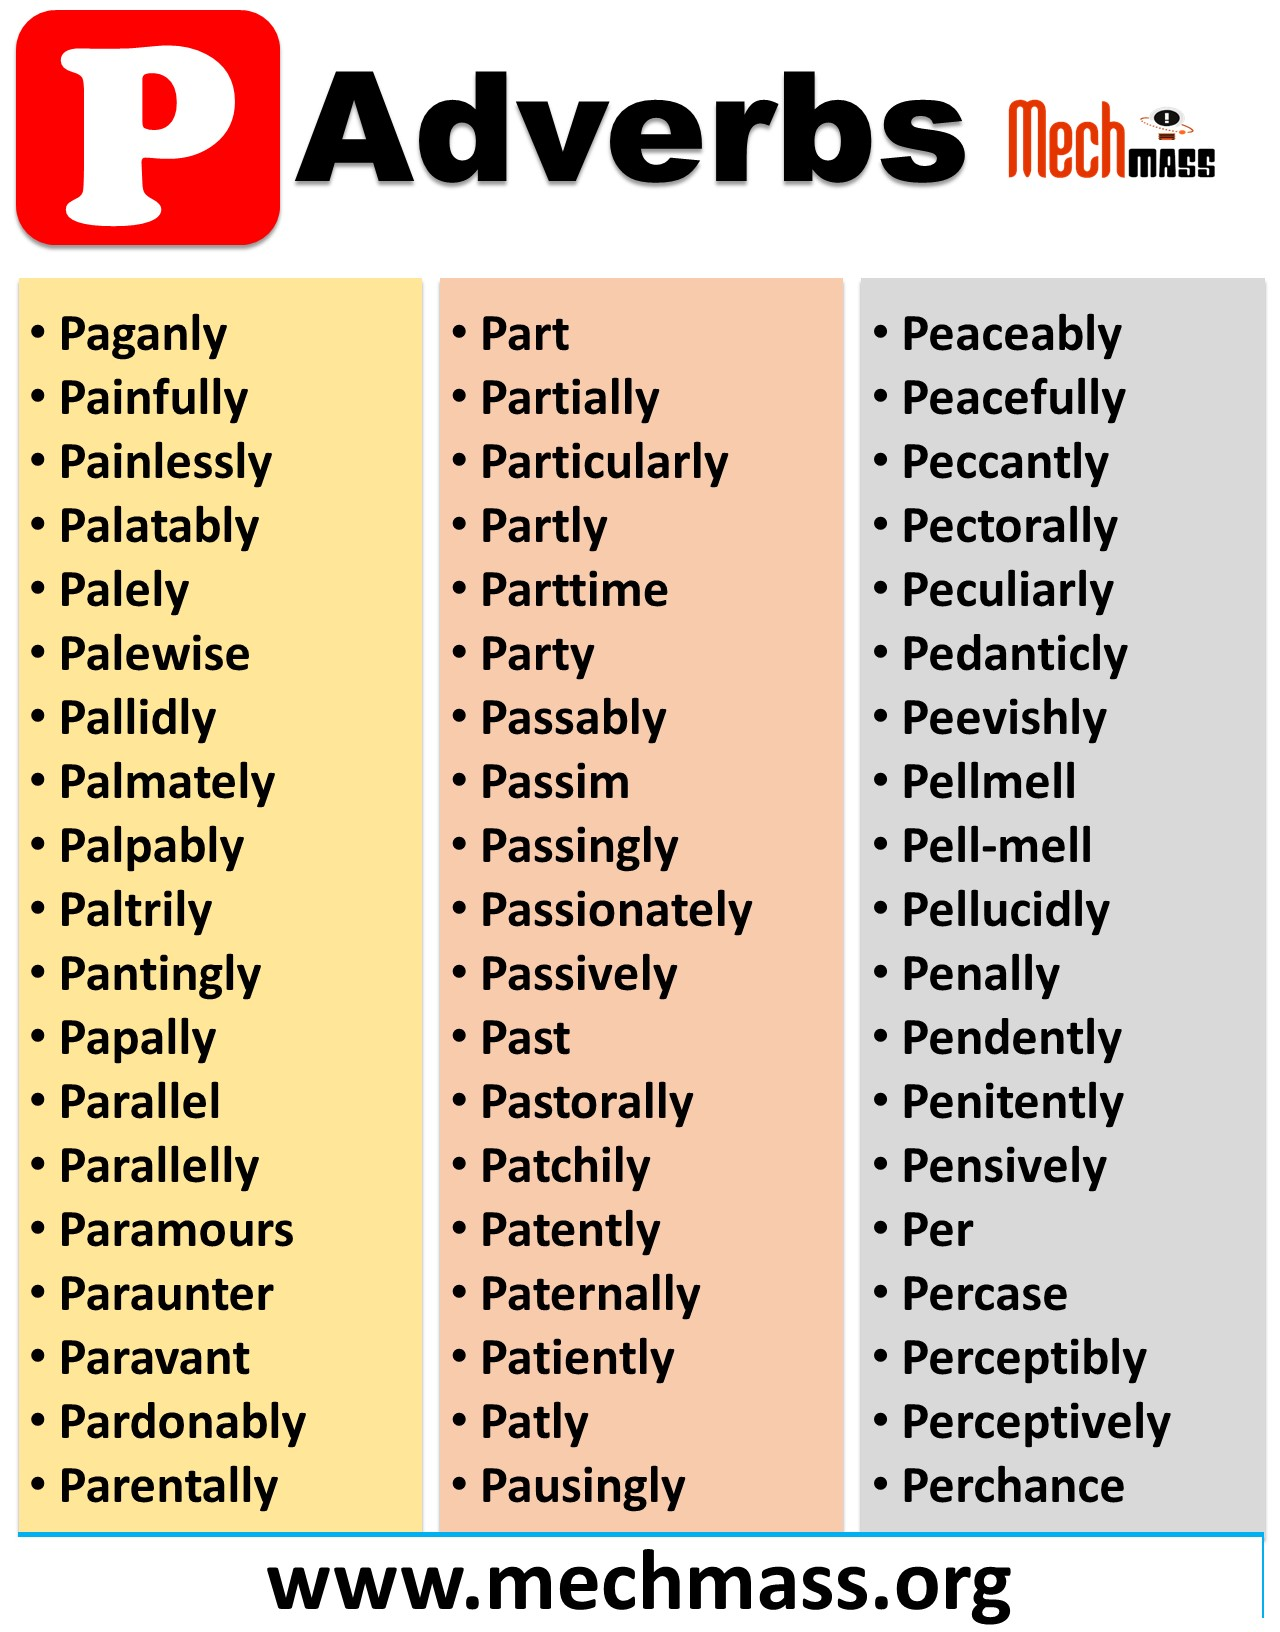 adverbs that start with p